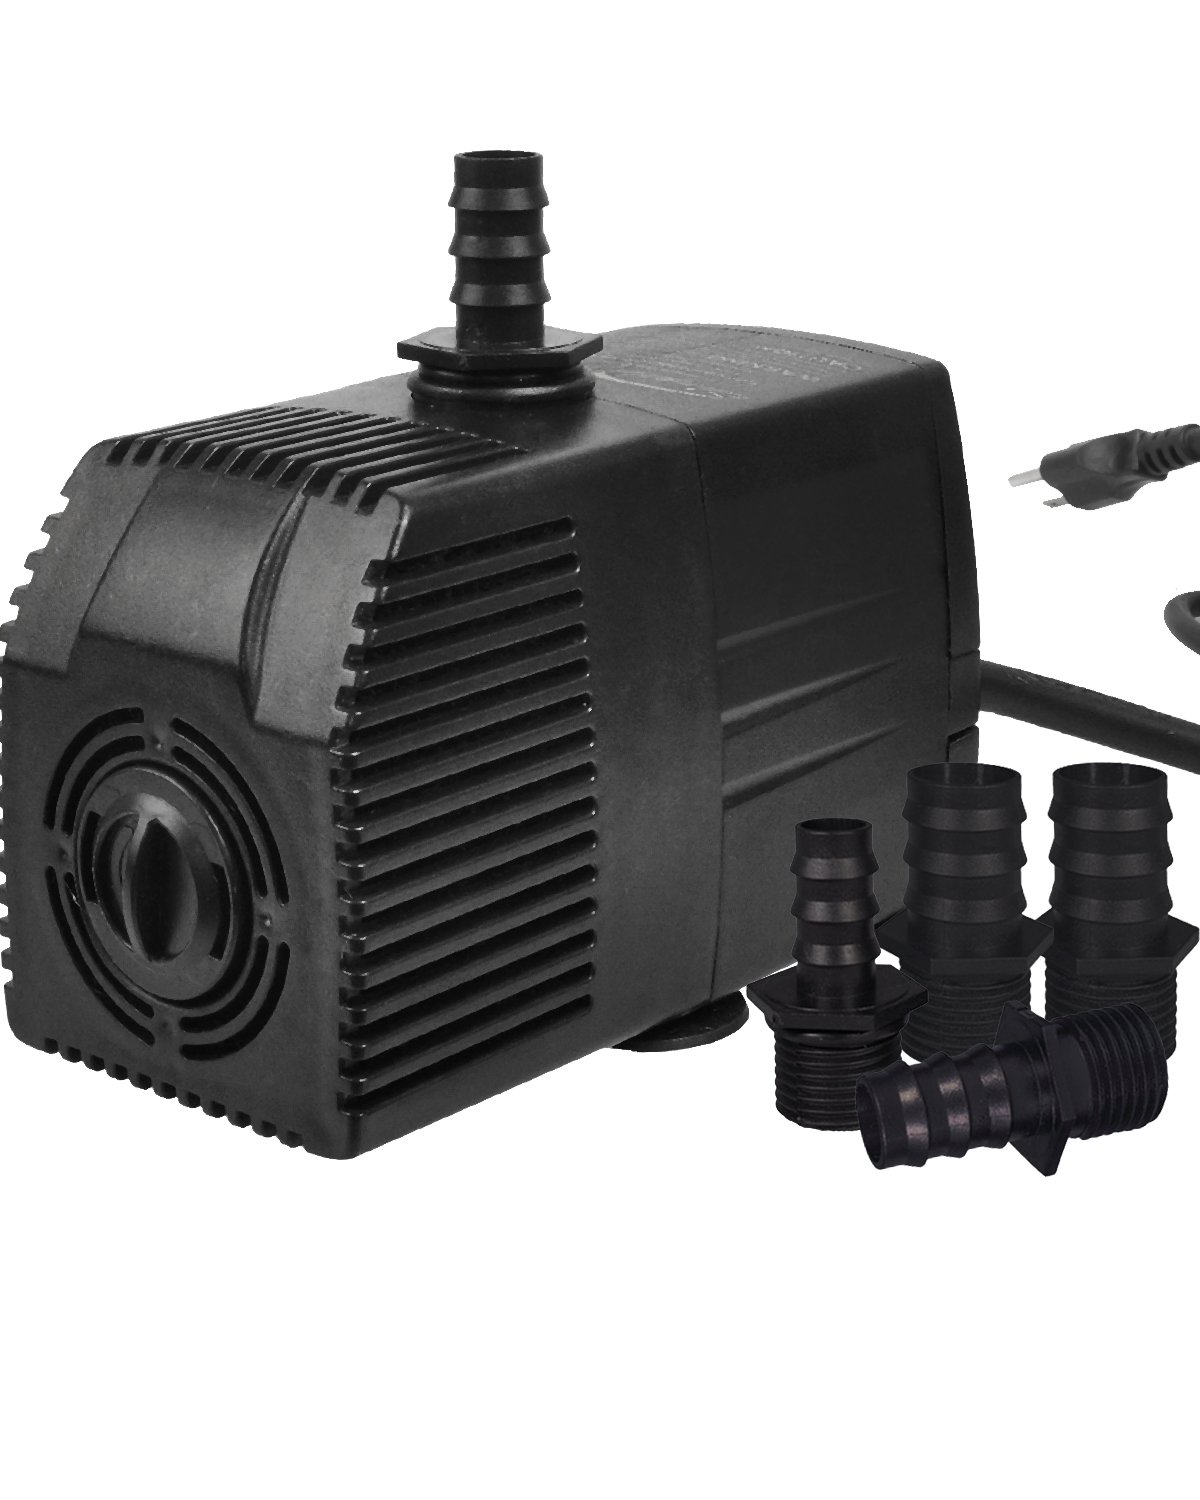 Simple Deluxe 400 GPH UL Listed Submersible Pump with Pre-Filter & 15' Waterproof Cord for Hydroponics, Aquaponics, Fountains, Ponds, Statuary, Aquariums & more